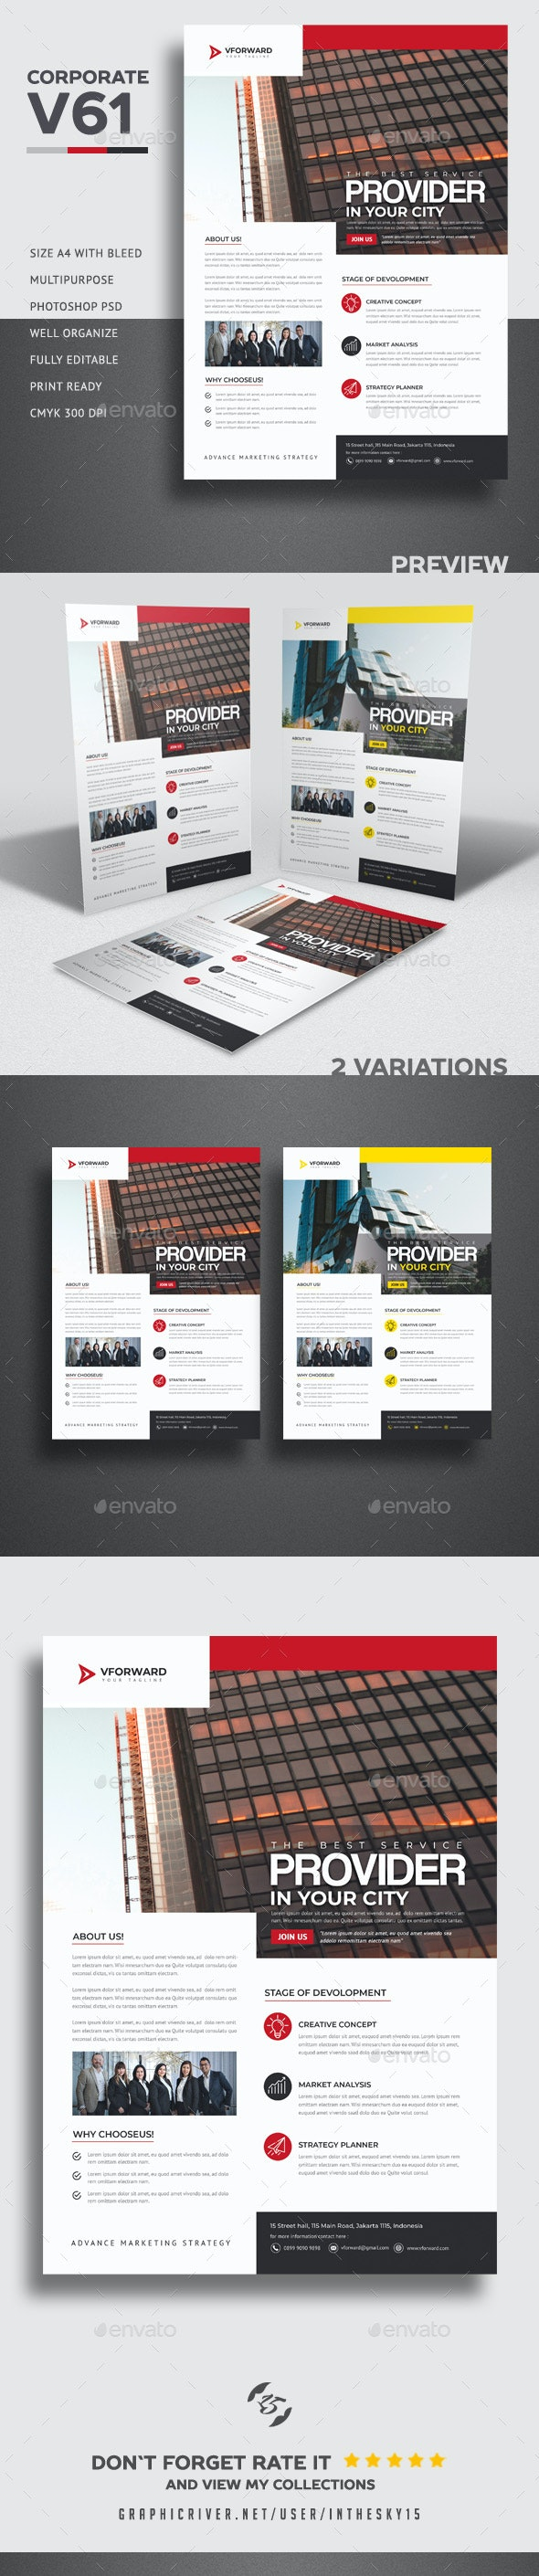 Corporate V61 Flyer - Corporate Flyers